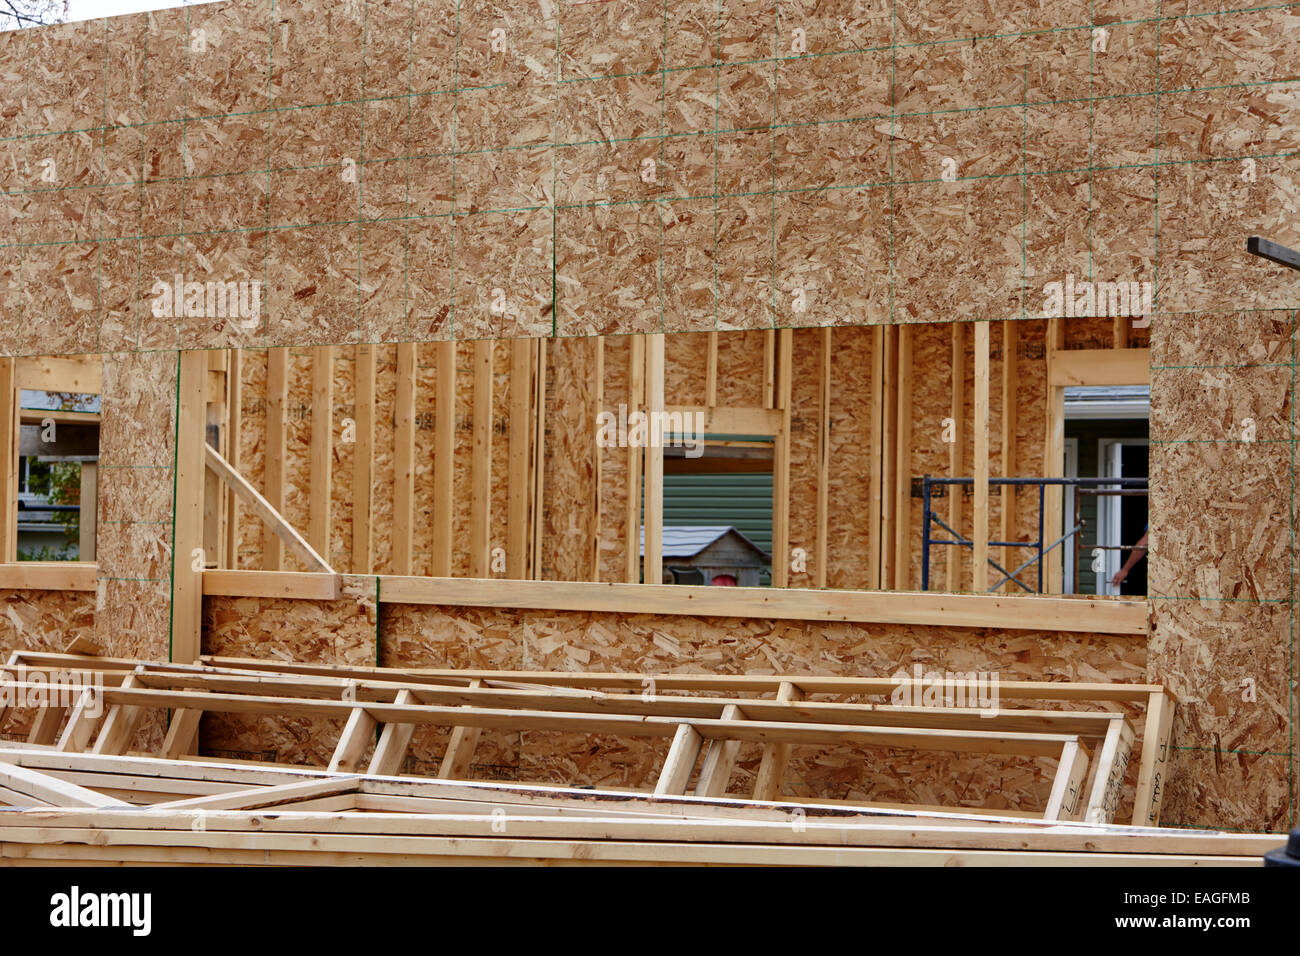 typical timber framed house construction with sheet panels Saskatchewan Canada - Stock Image